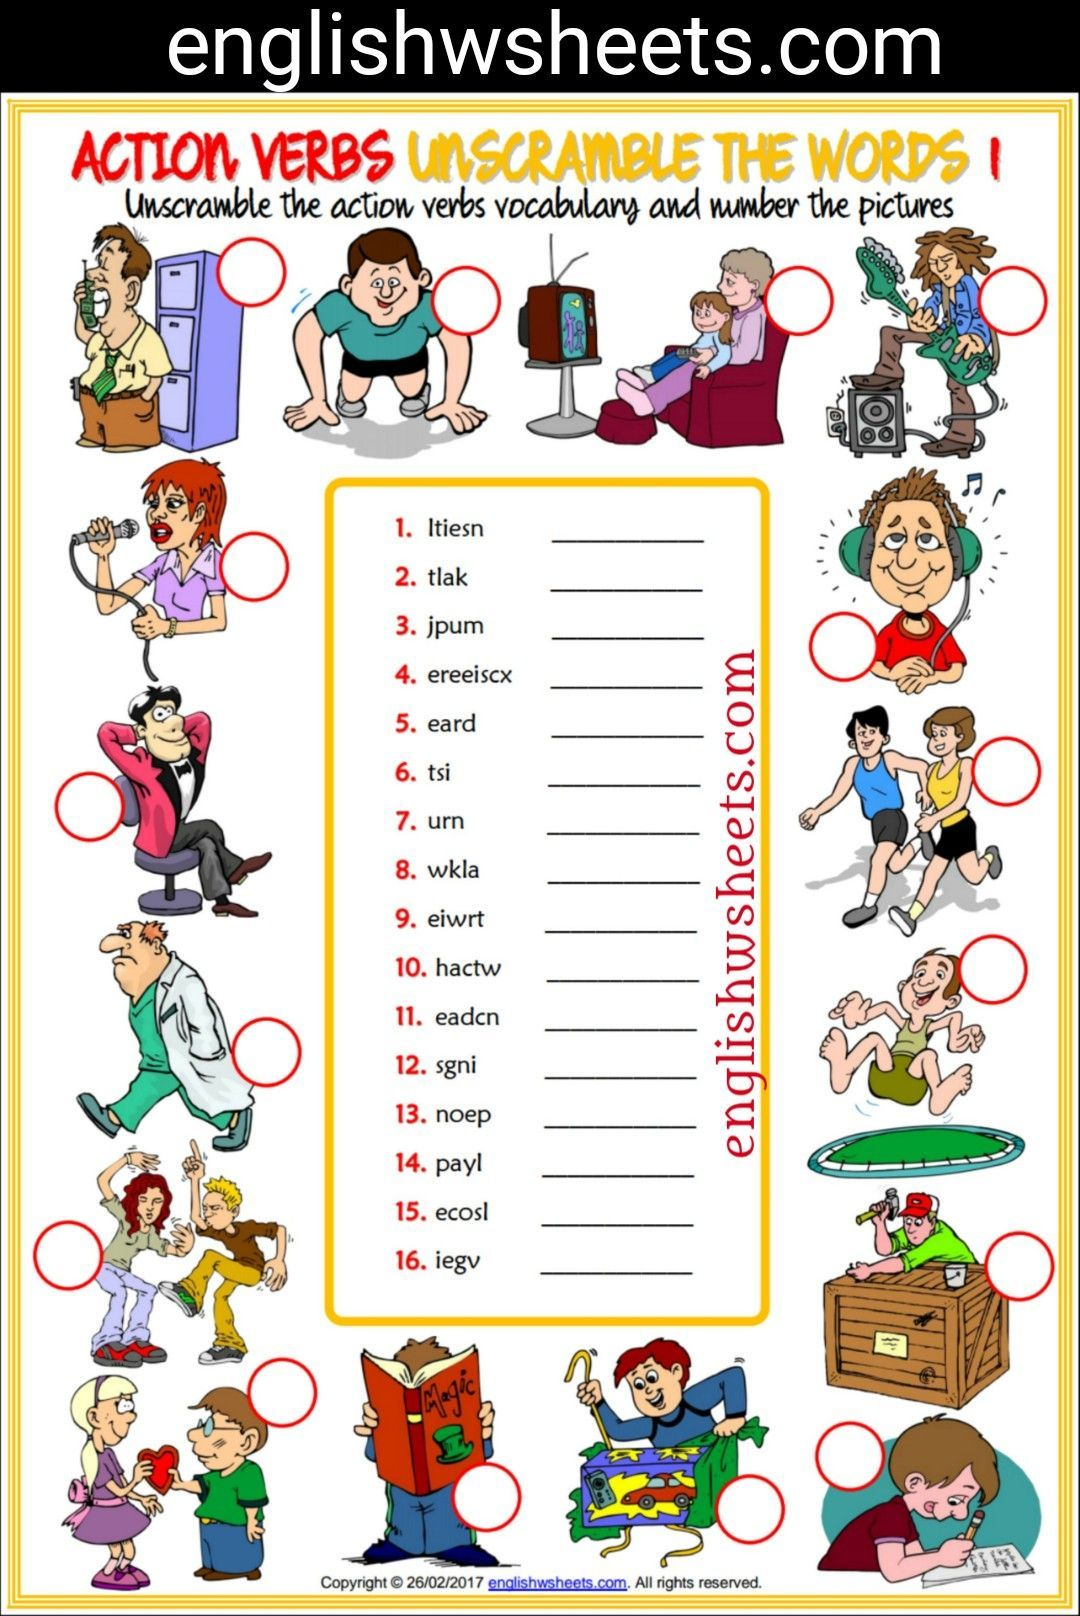 Action Verbs Esl Printable Unscramble The Words Worksheets For Kids Las Profesiones En Ingles Verbos Para Ninos Clase De Ingles